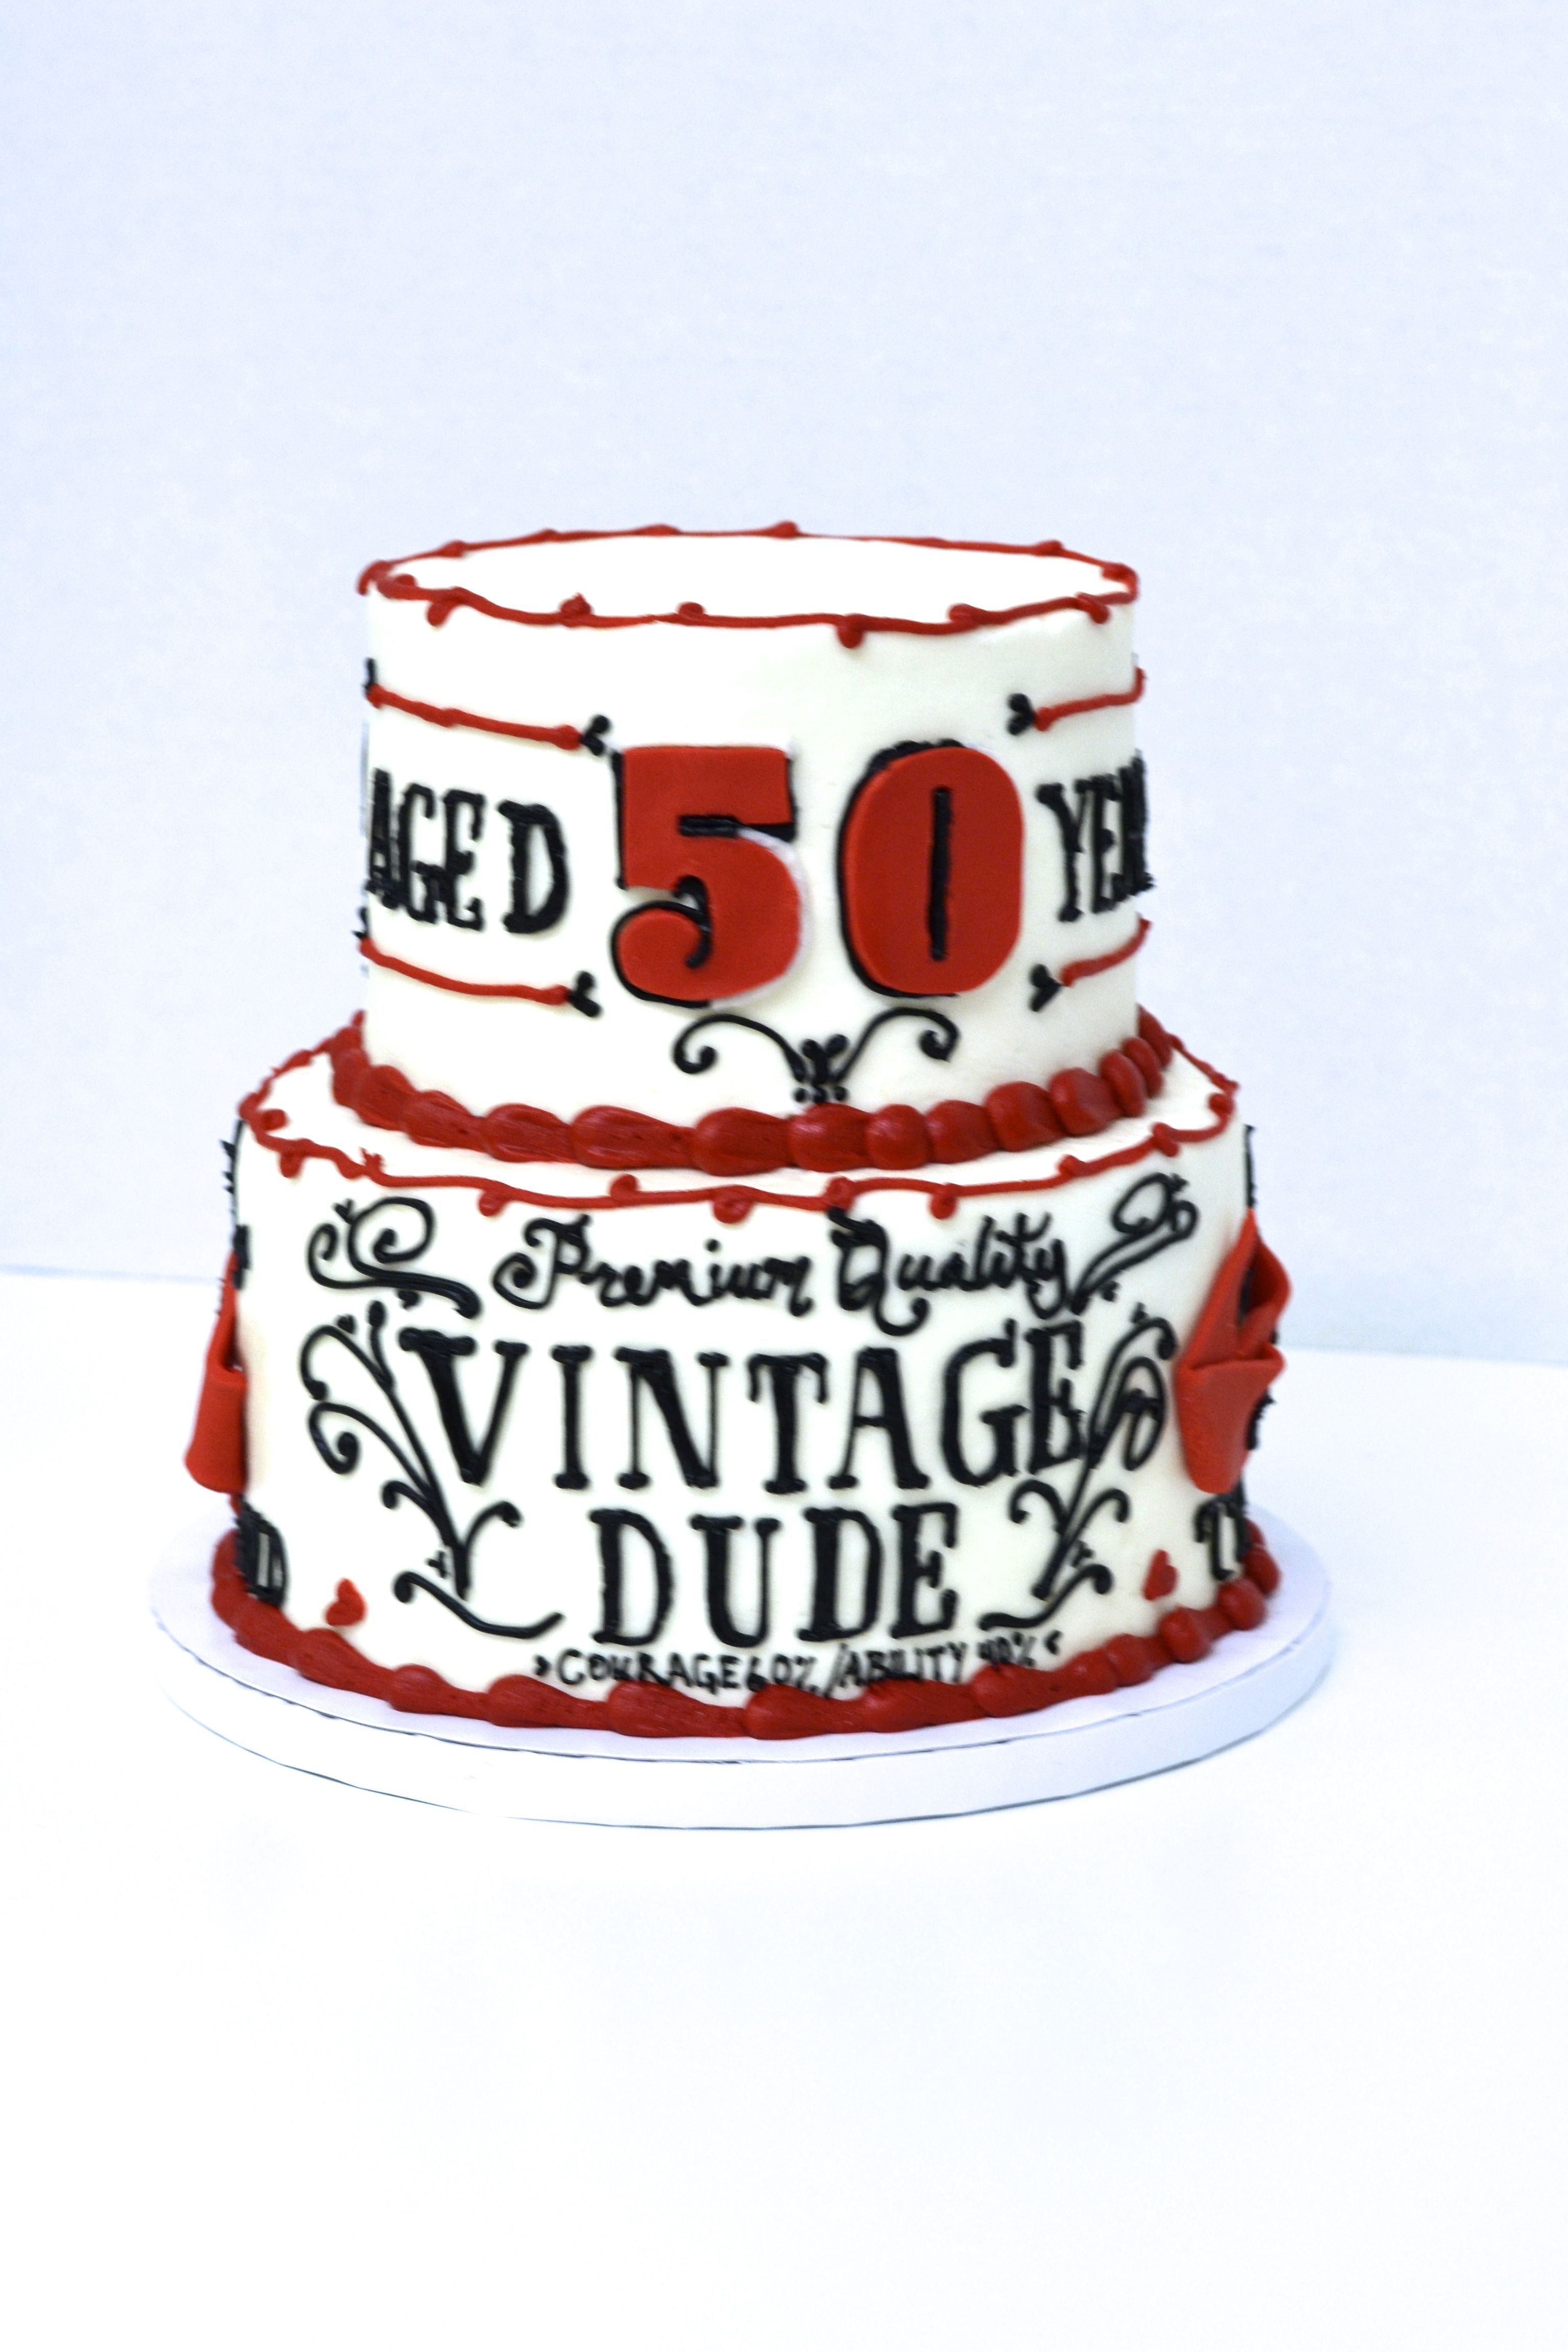 Vintage Dude Birthday Cakes 50th For Men 60th Party